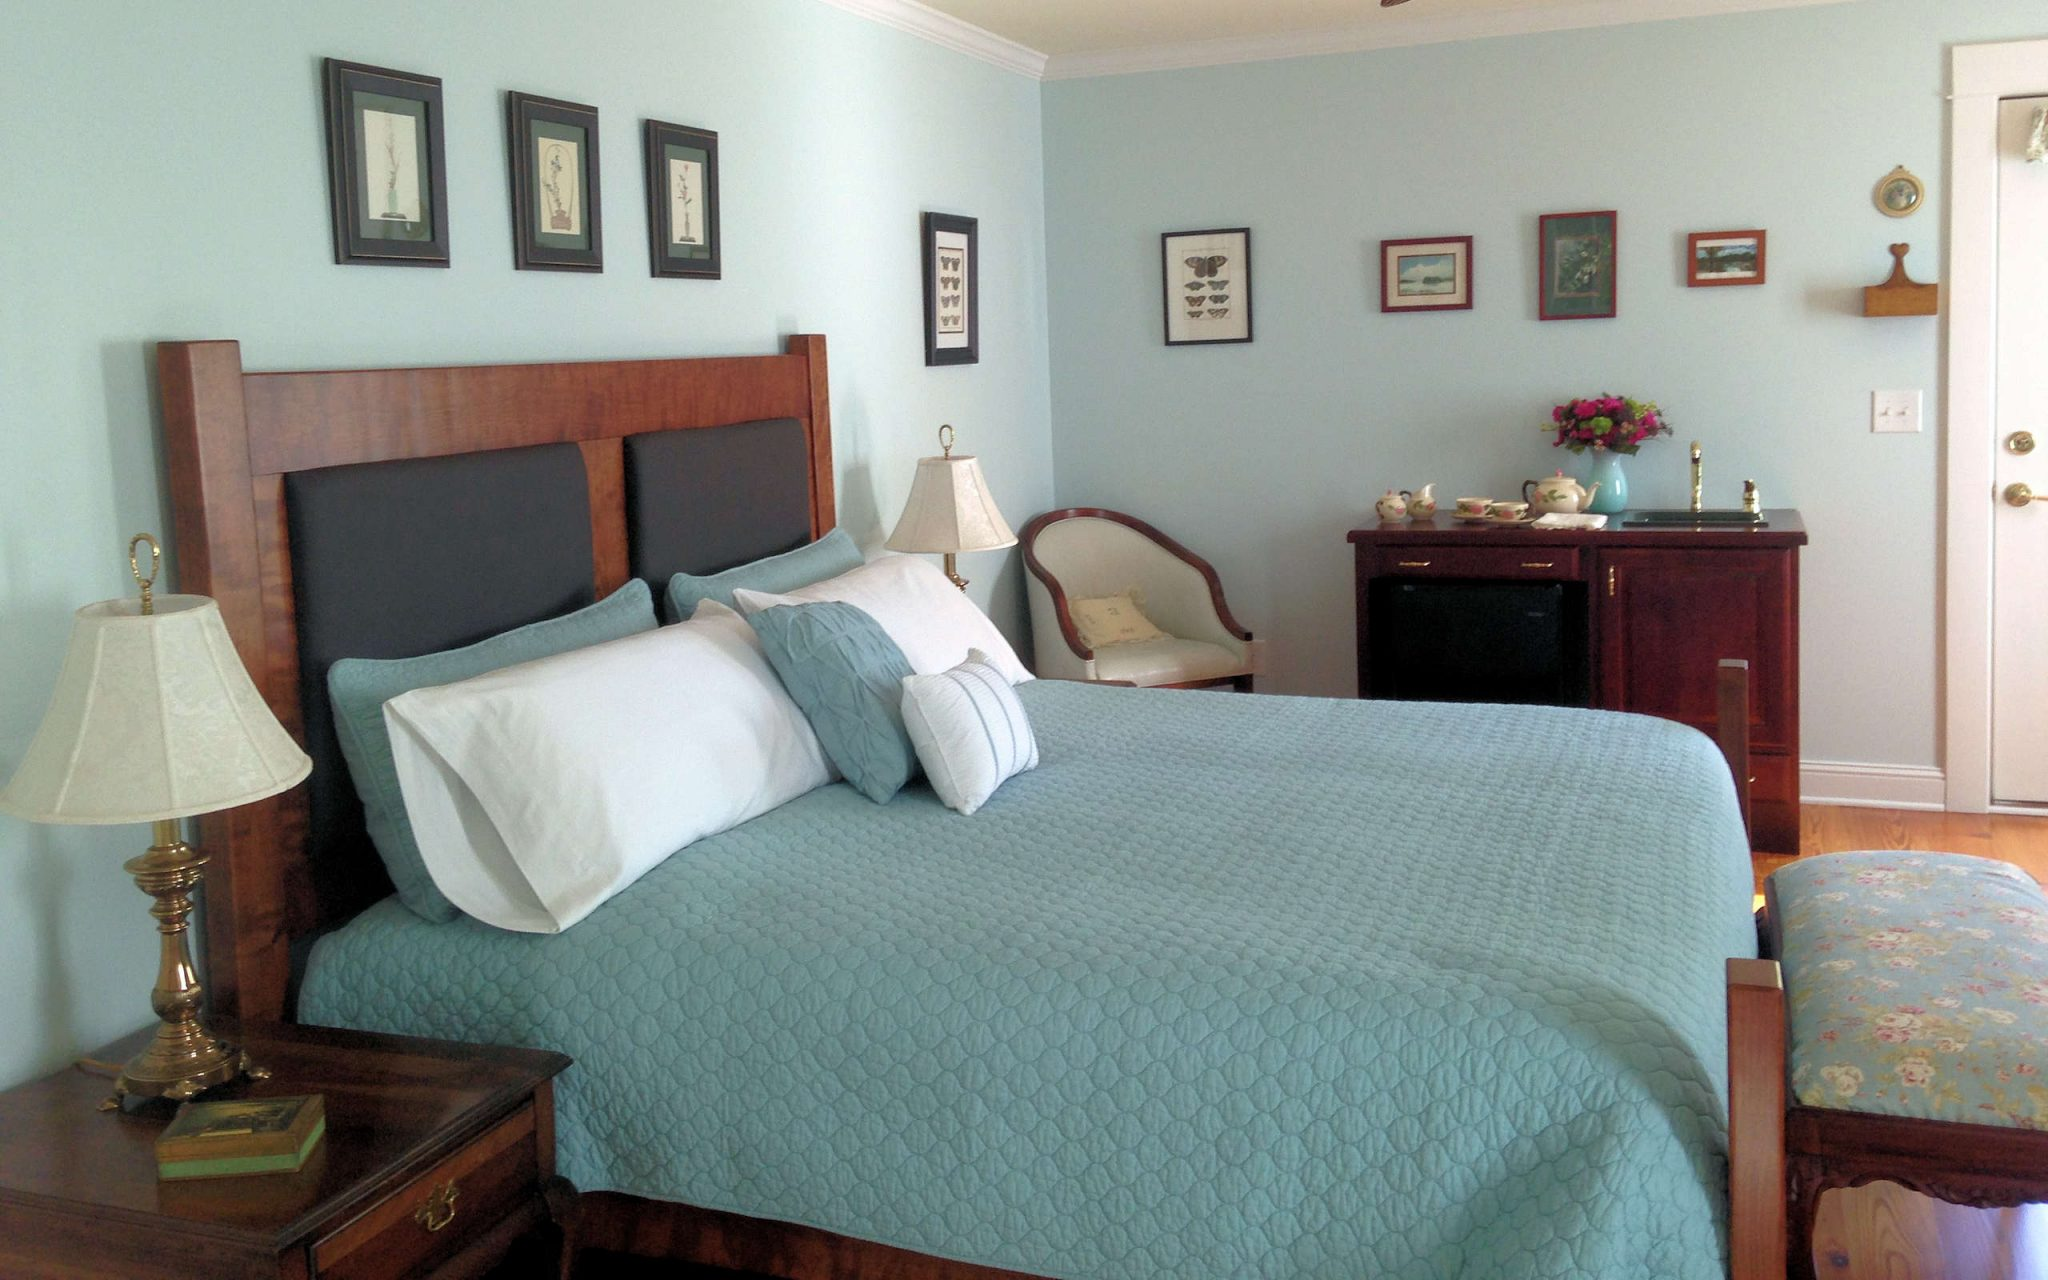 River-Dell-Bed-and-Breakfast-suite.jpg